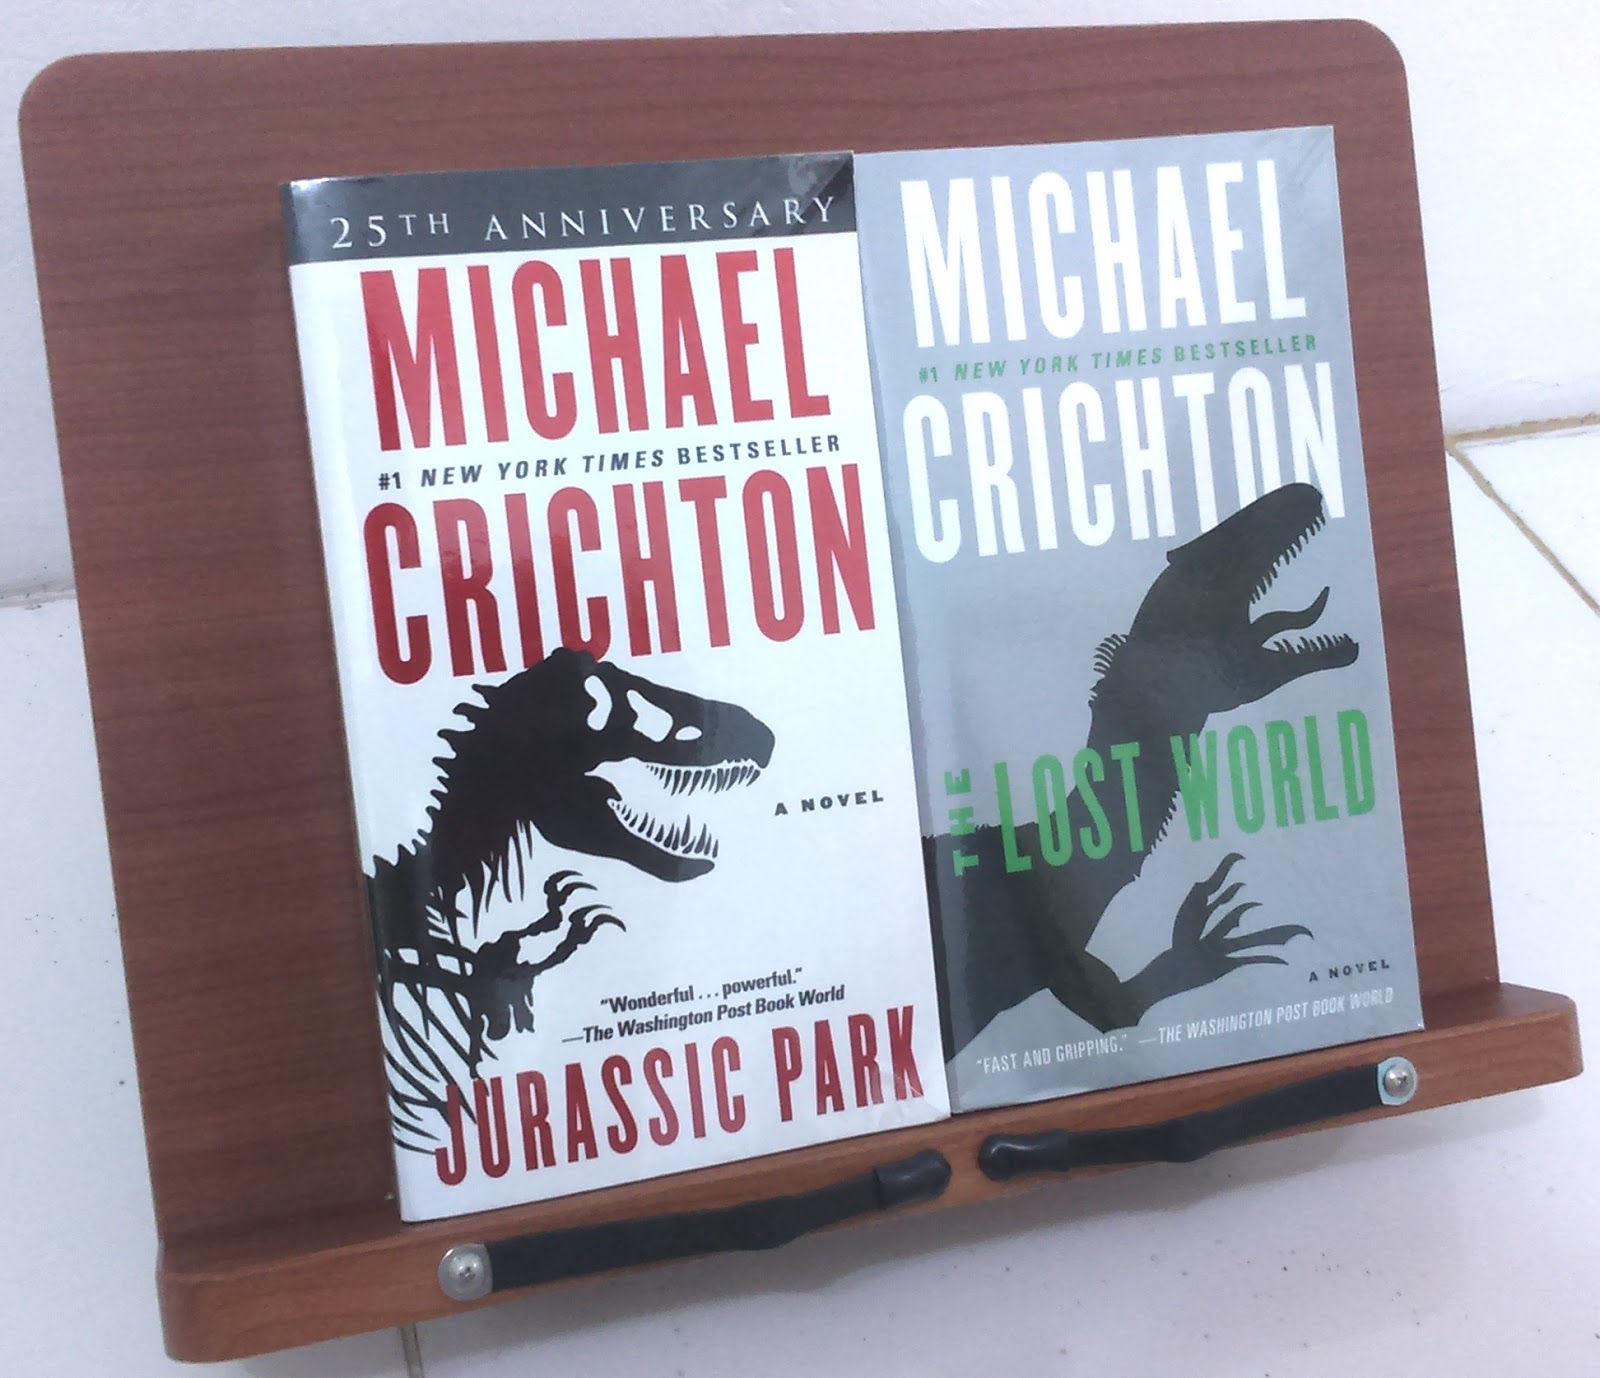 an analysis of the story jurassic park by michael crichton Jurassic park: the lost world by: michael crichton summary: the lost world is a sequel to michael crichton's jurassic park in the story after ian malcolm survives the challenge from 6 years ago.